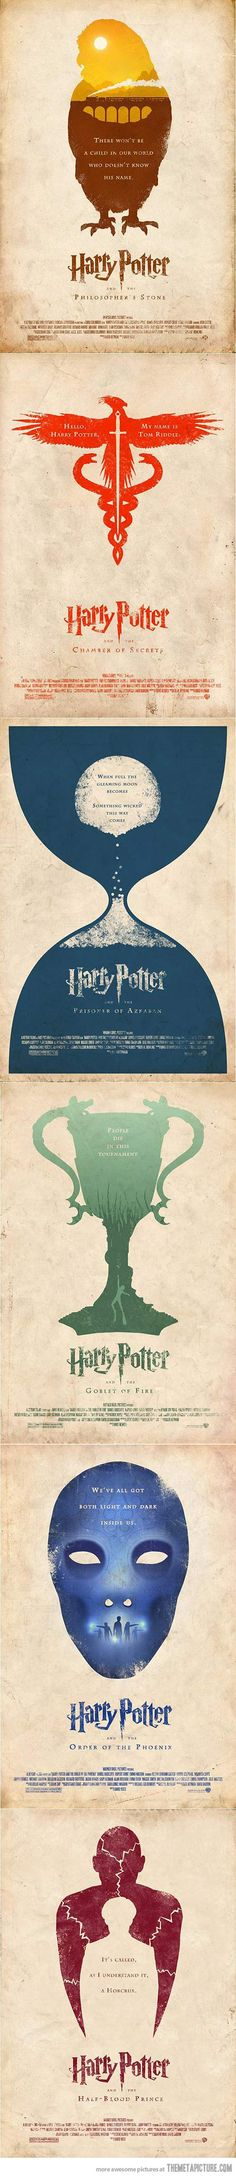 Alternative Poster Versions Of Harry Potter Movies. Absolutely beautiful.